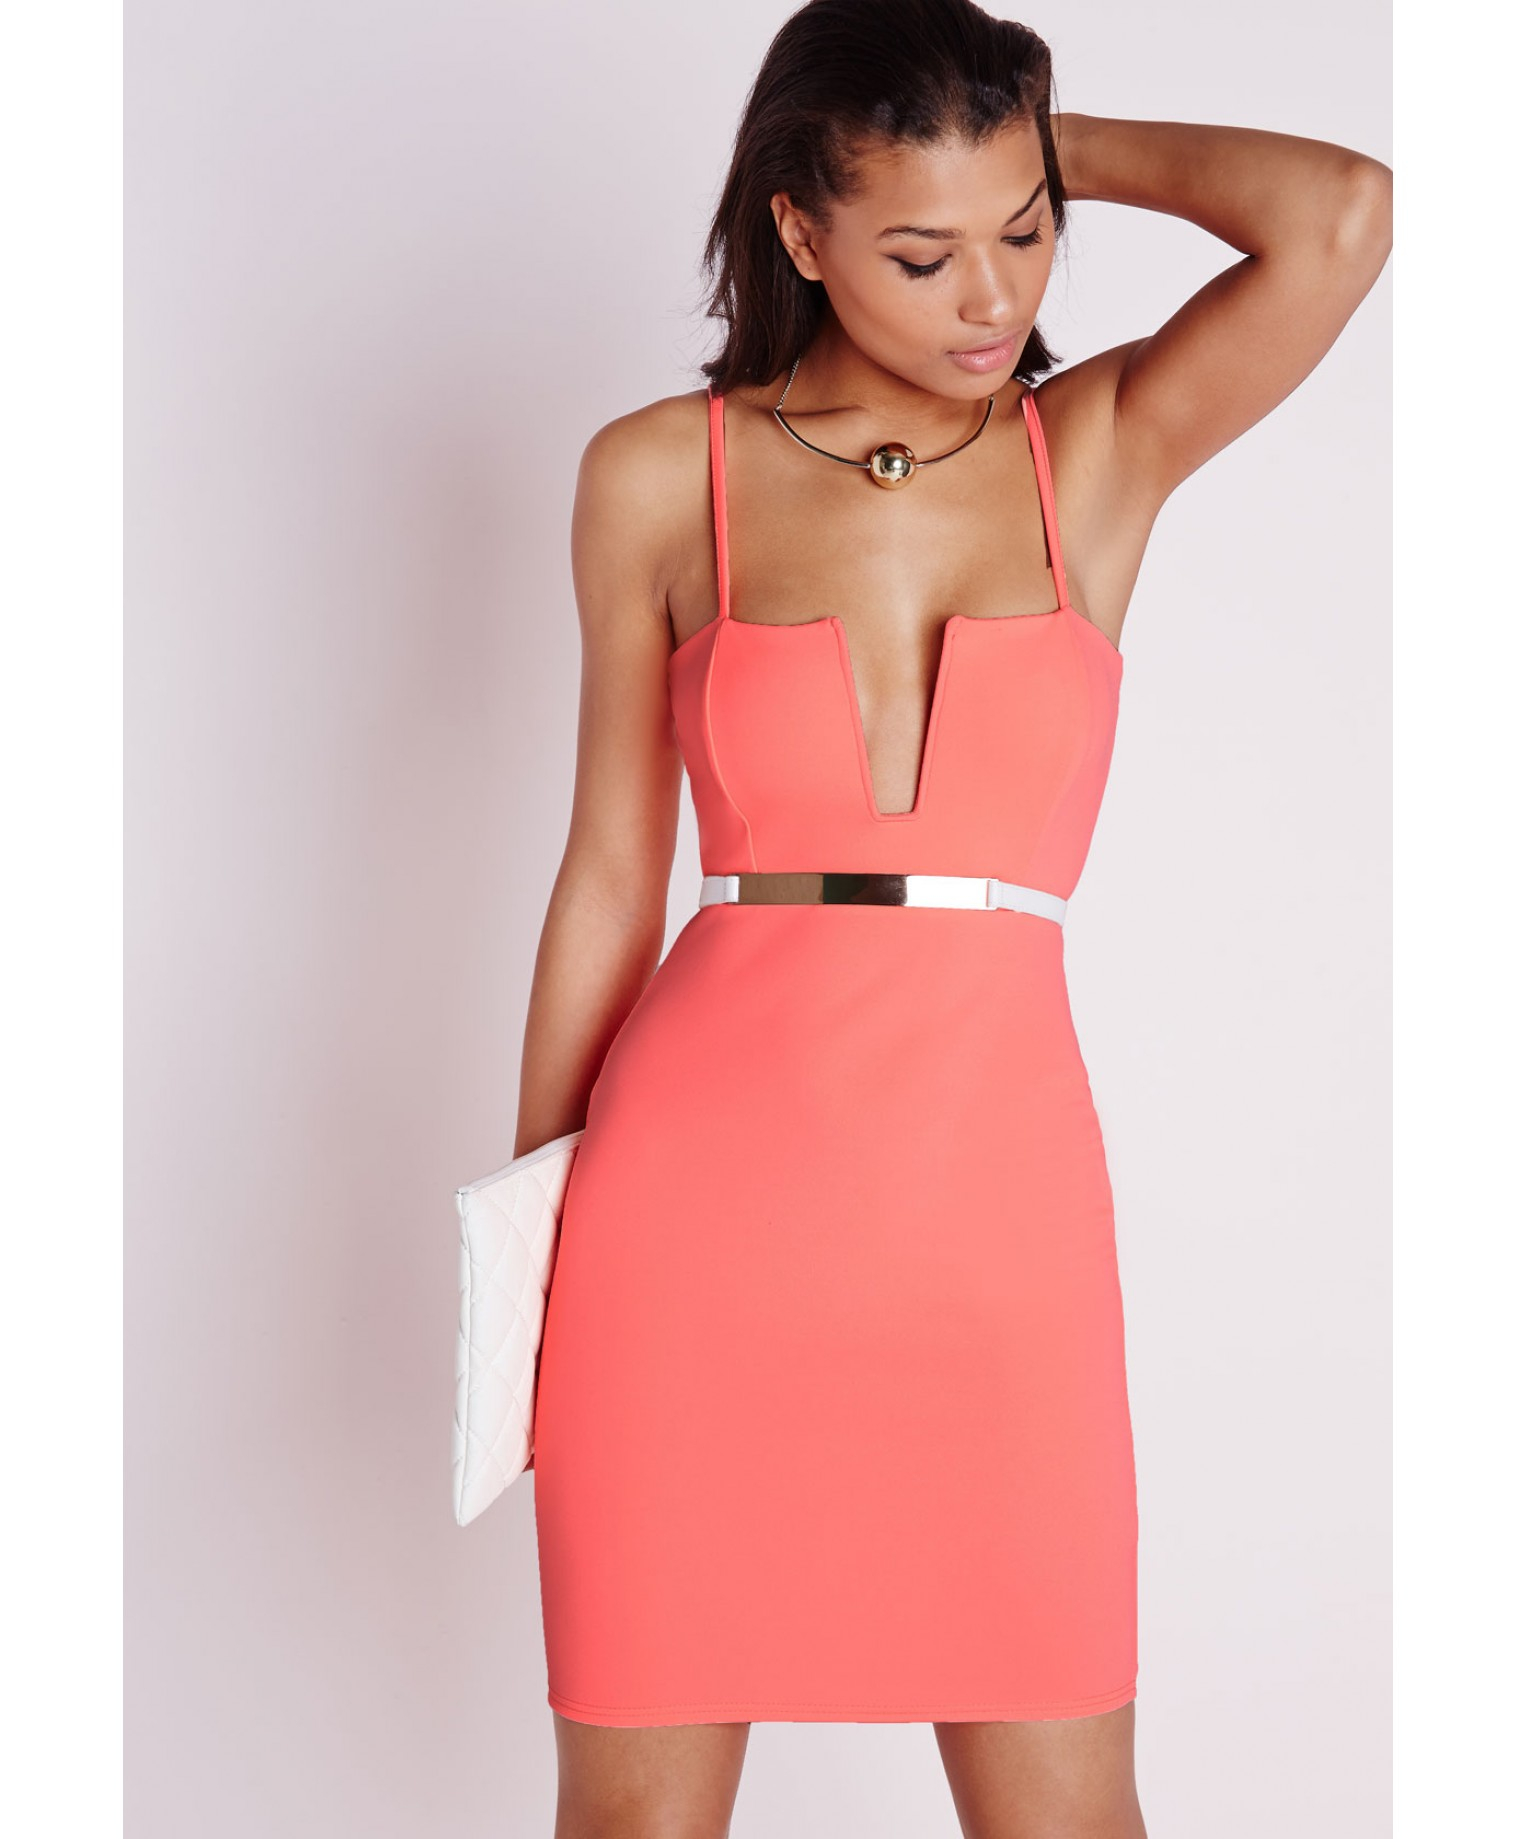 Missguided Strappy Square Neck Bodycon Dress Neon Coral in Pink | Lyst